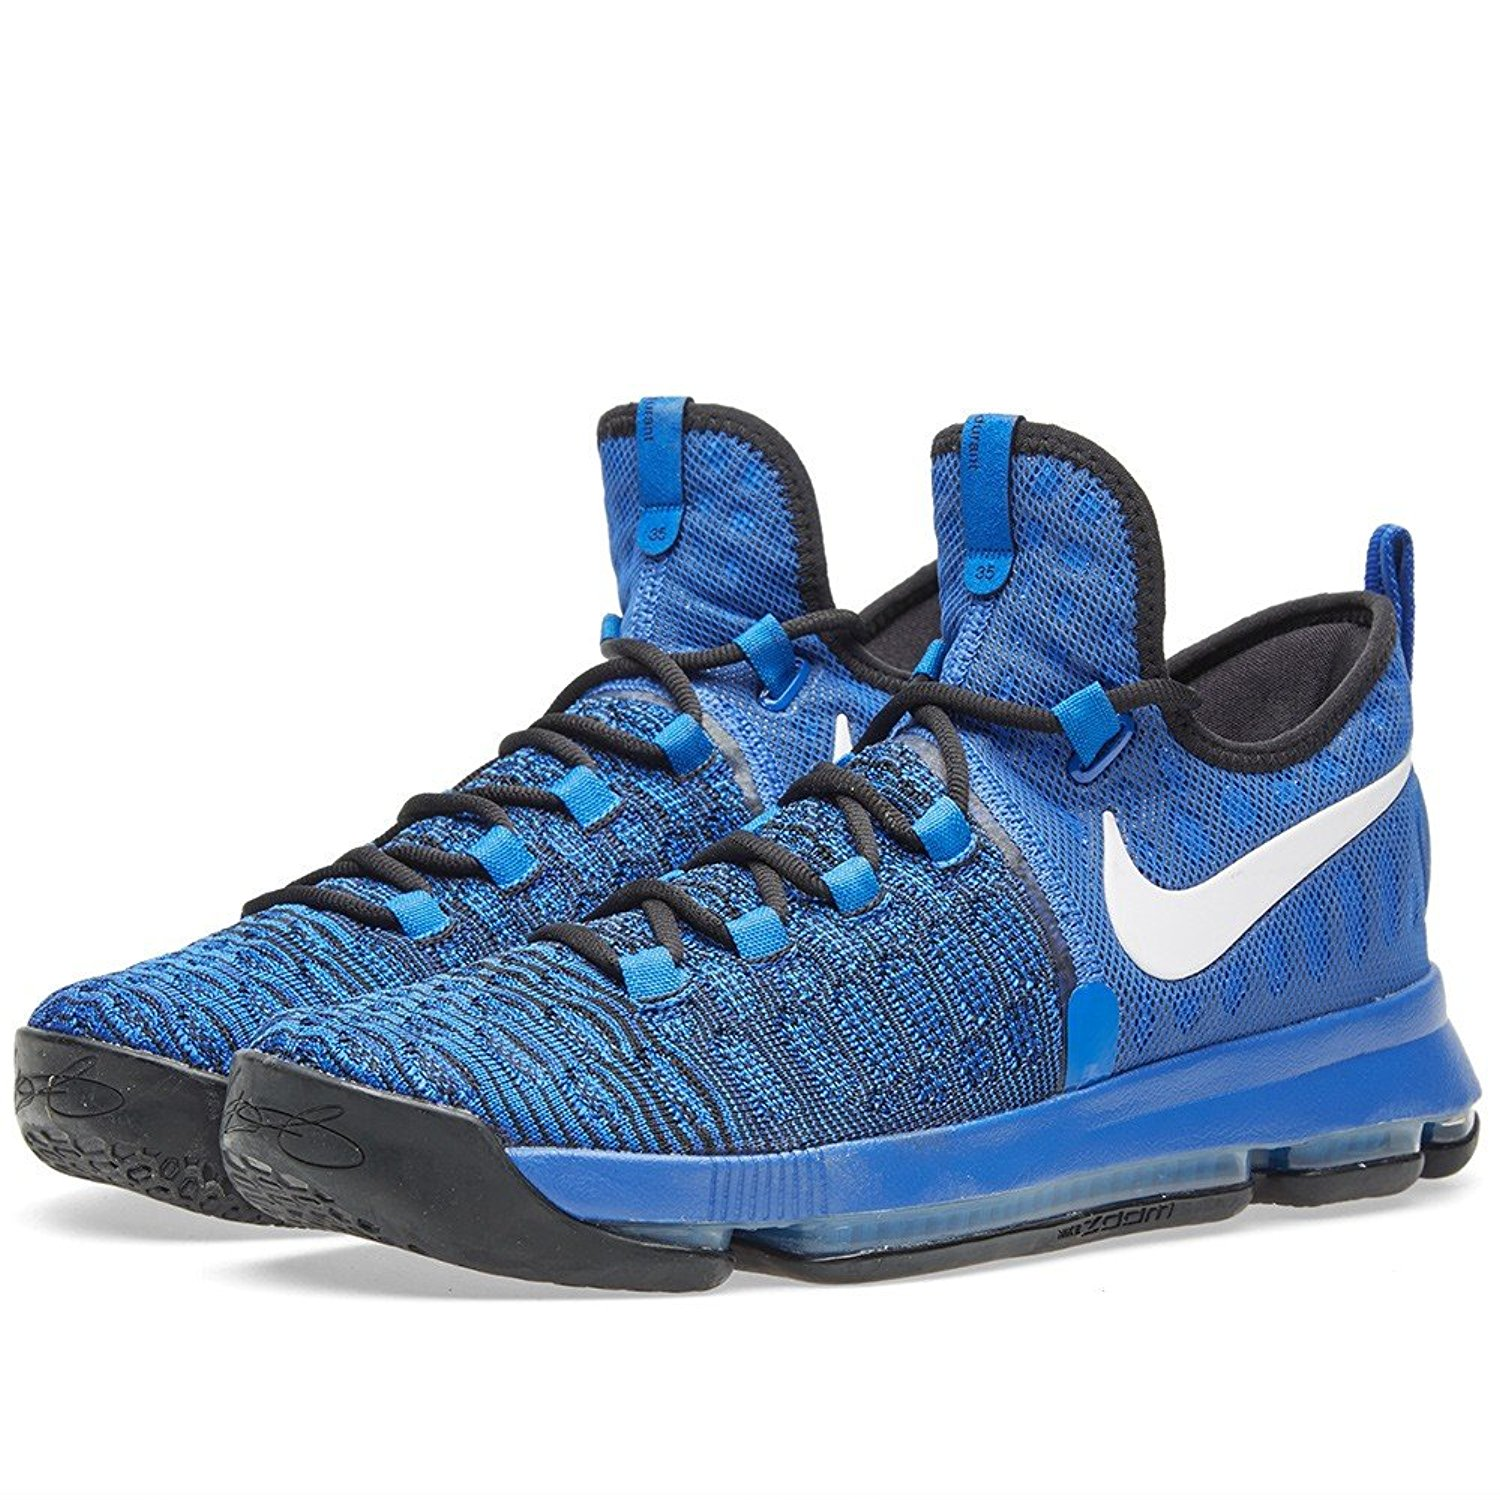 01e57500d1d6 Get Quotations · Nike Men s Zoom KD 9